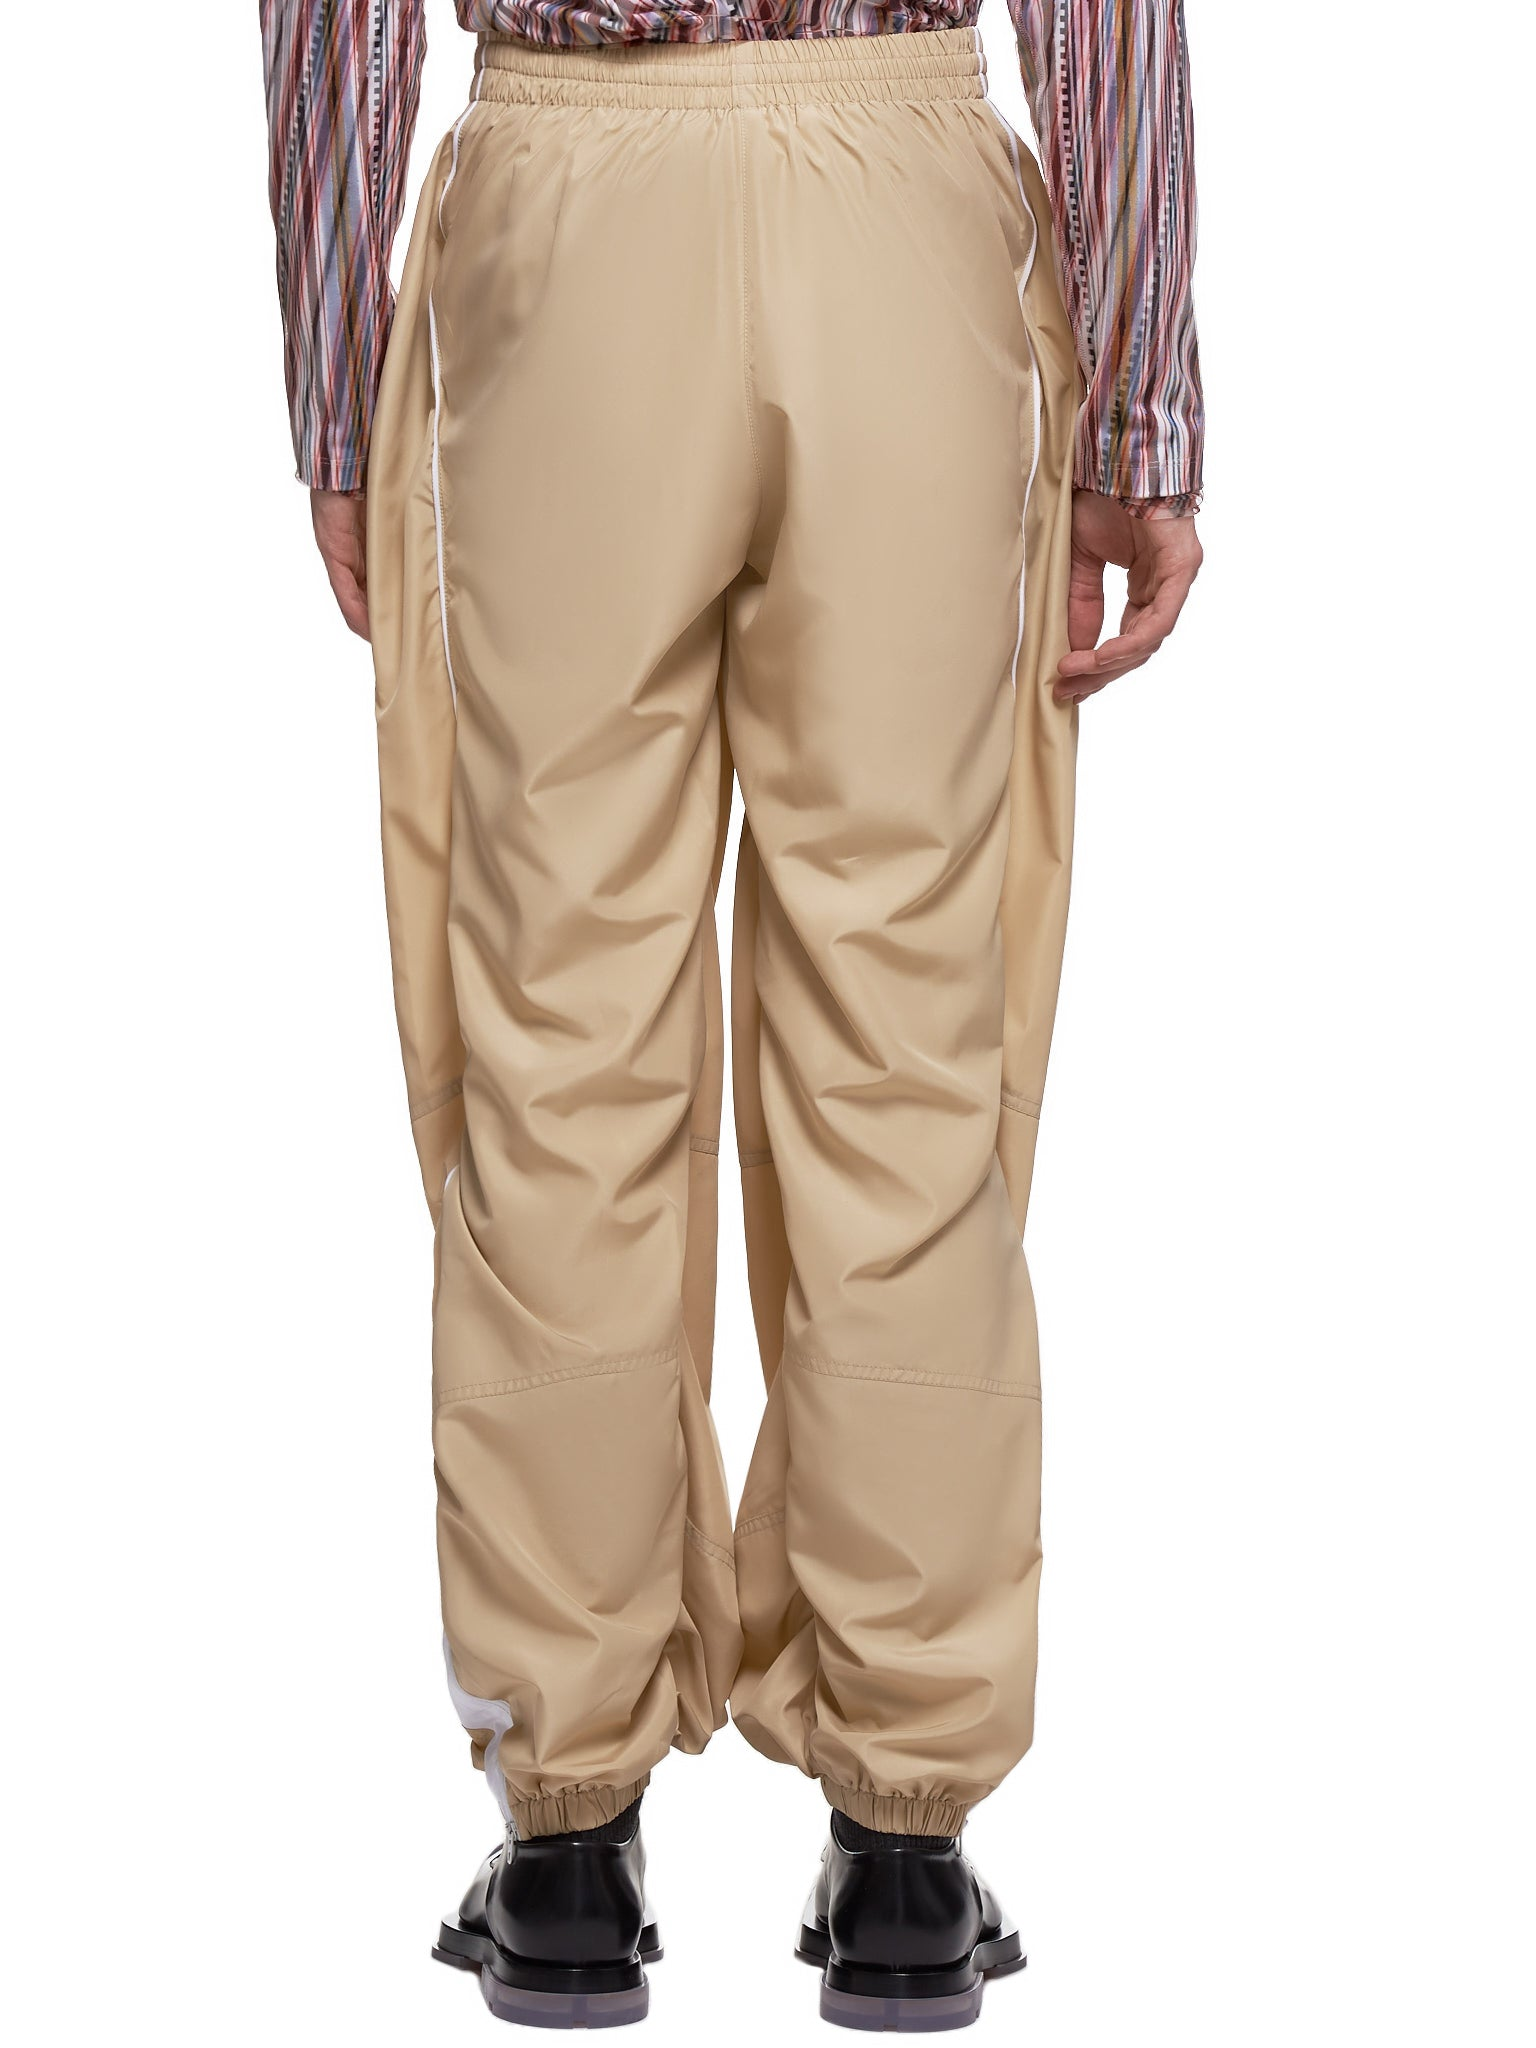 Athletic Trousers (PANT48-S18-F121-BEIGE)